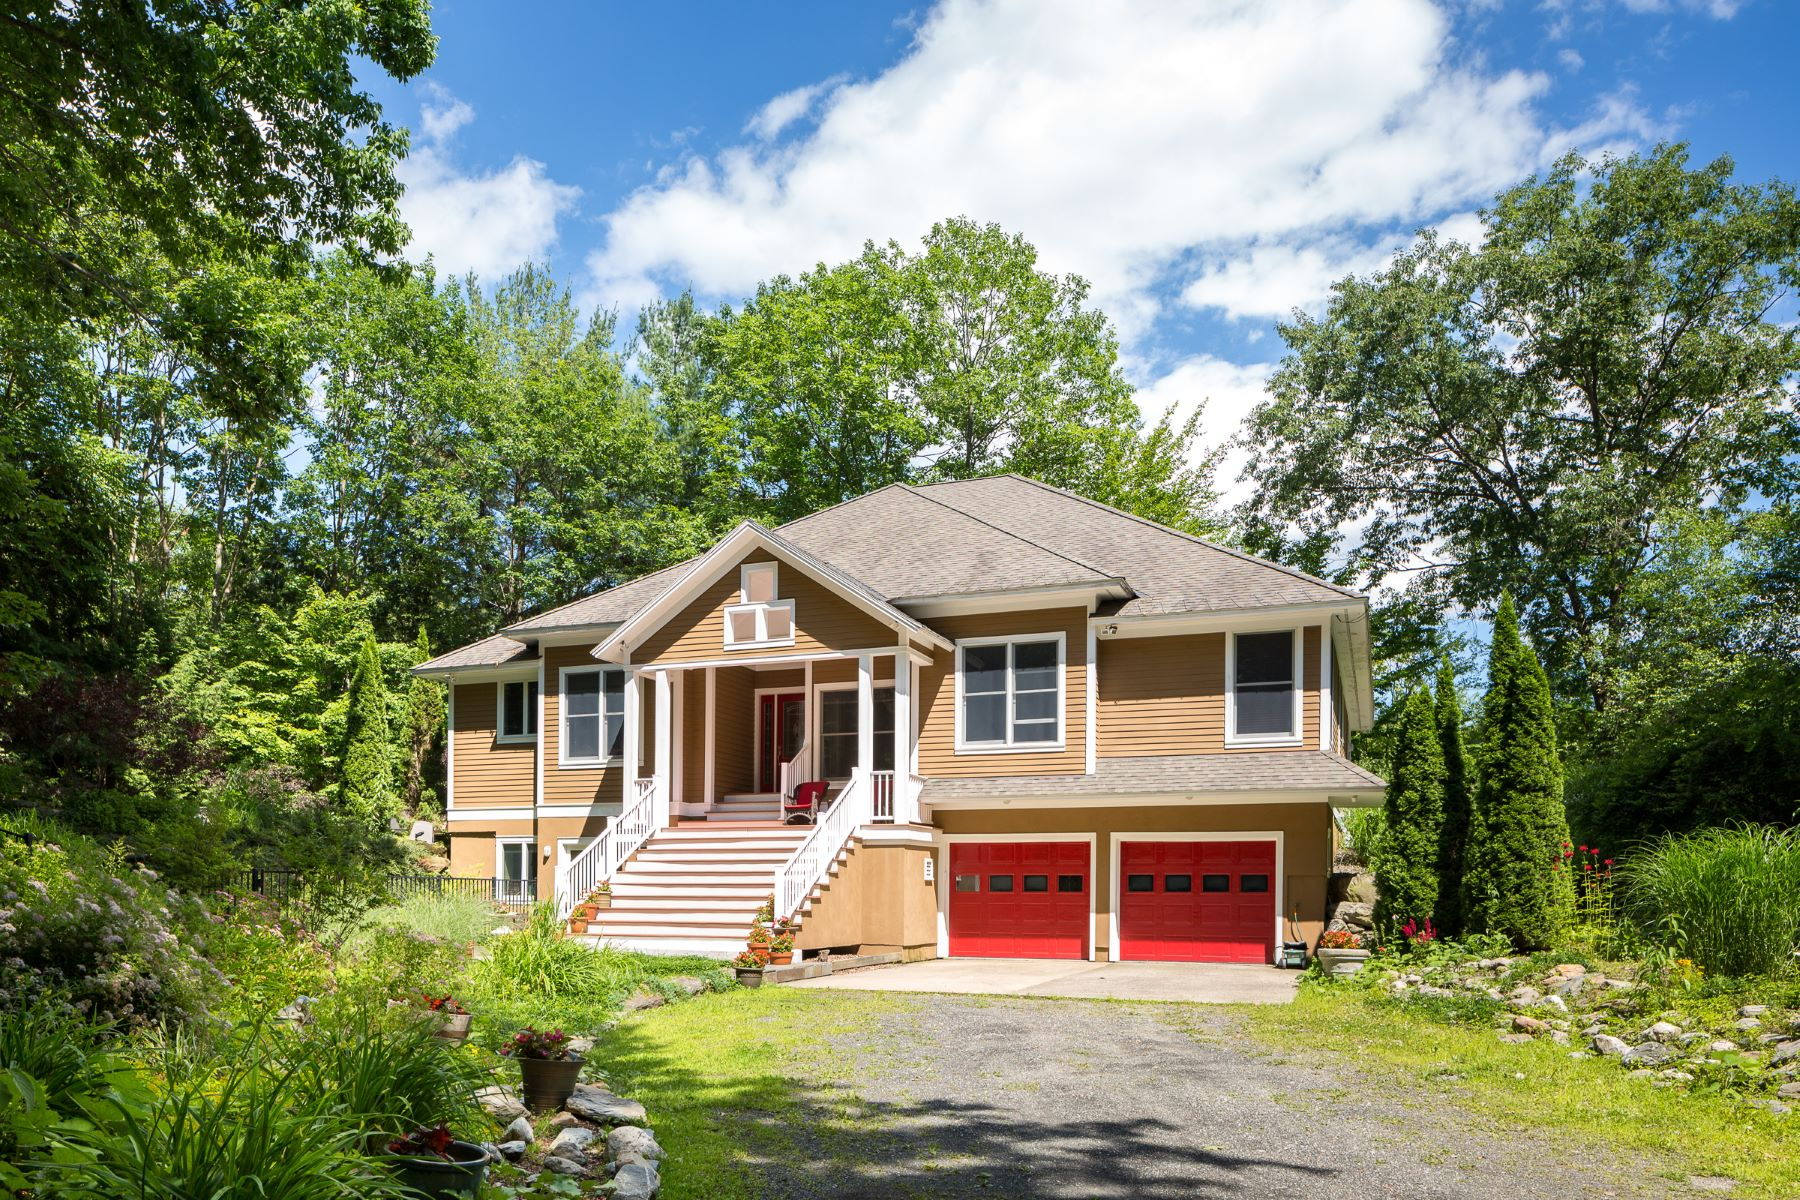 Single Family Home for Sale at Private Contemporary With Pool 21 West Alford Rd West Stockbridge, Massachusetts 01266 United States